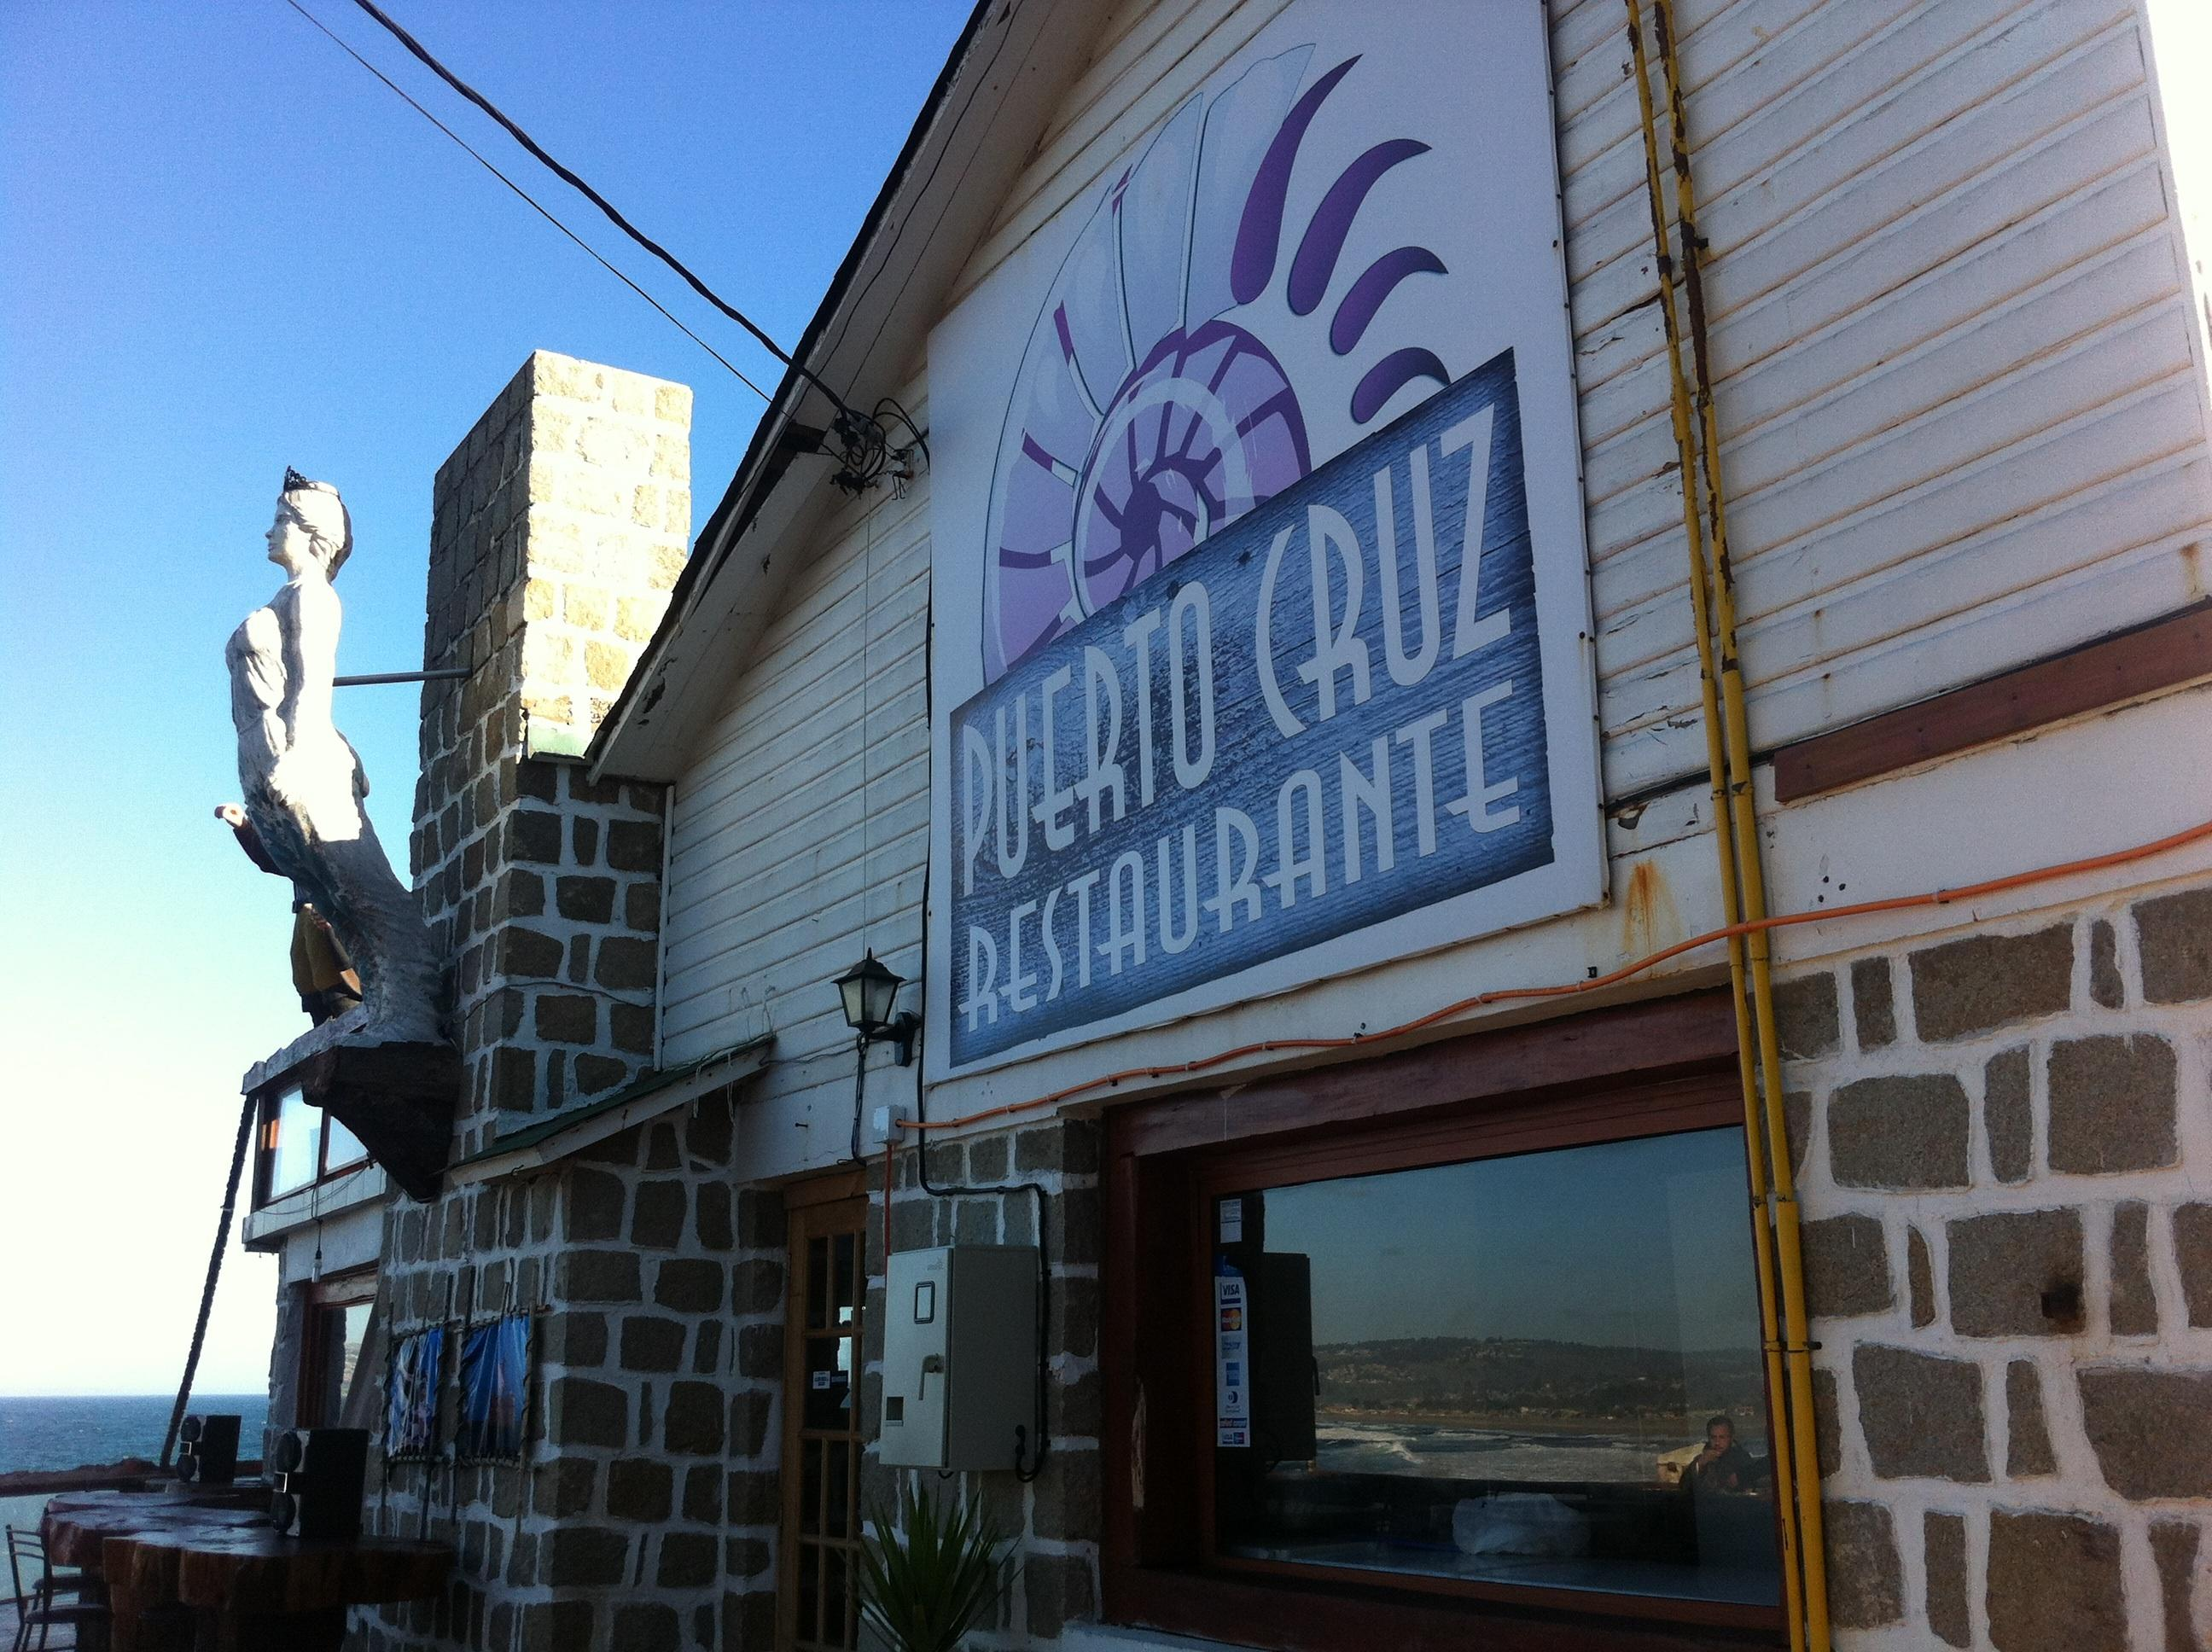 Things To Do in Chilean, Restaurants in Chilean